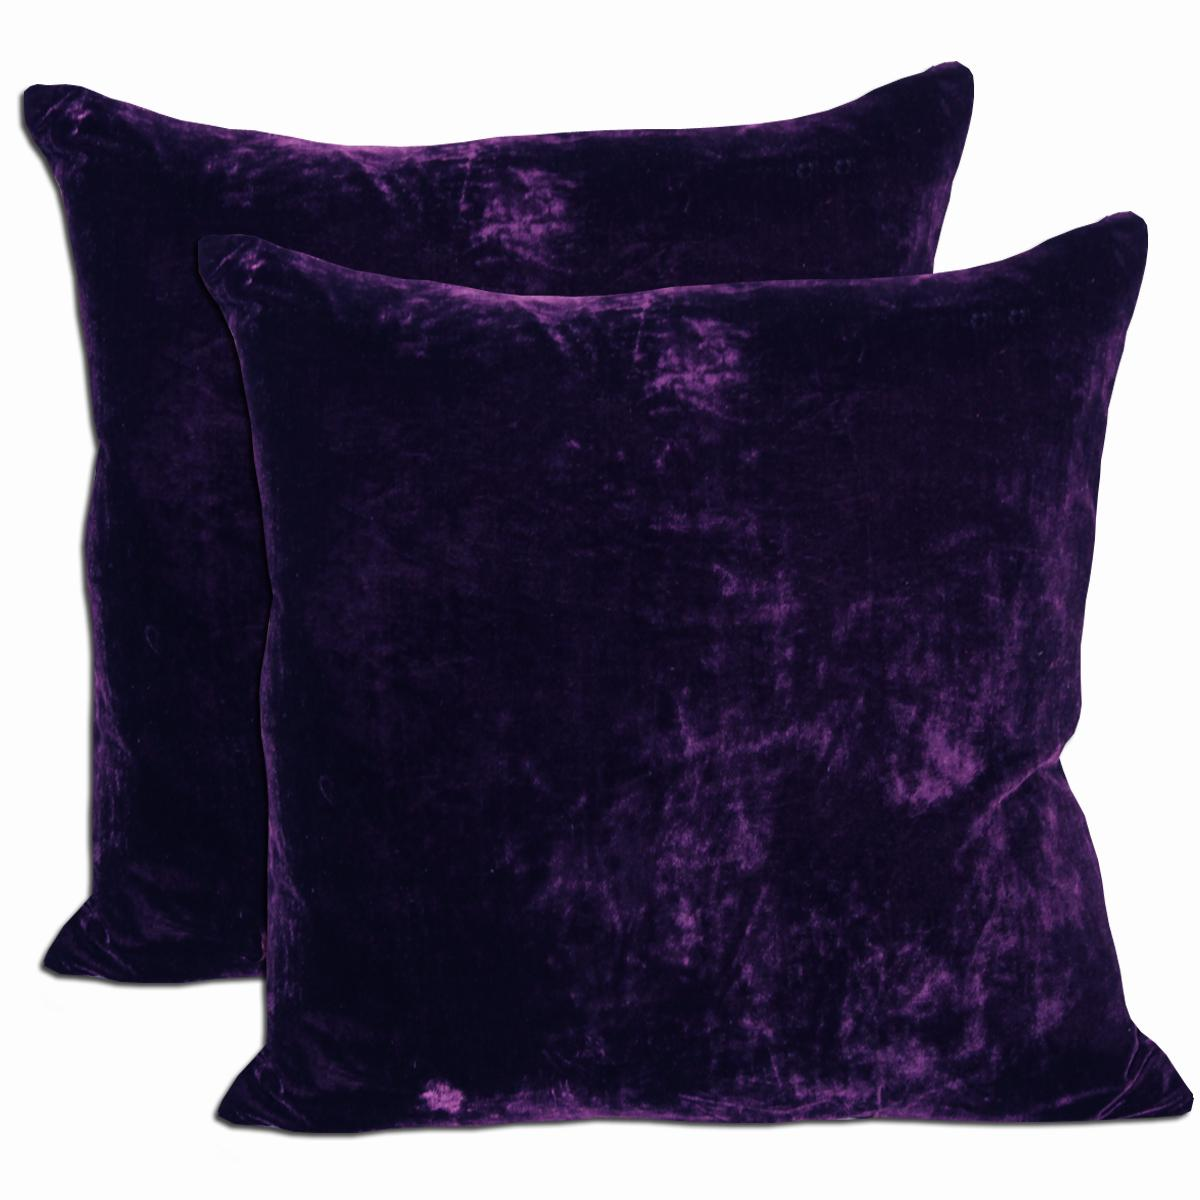 Purple Velvet Feather And Down Filled Throw Pillows Set Of 2 On Sale Overstock 5643394